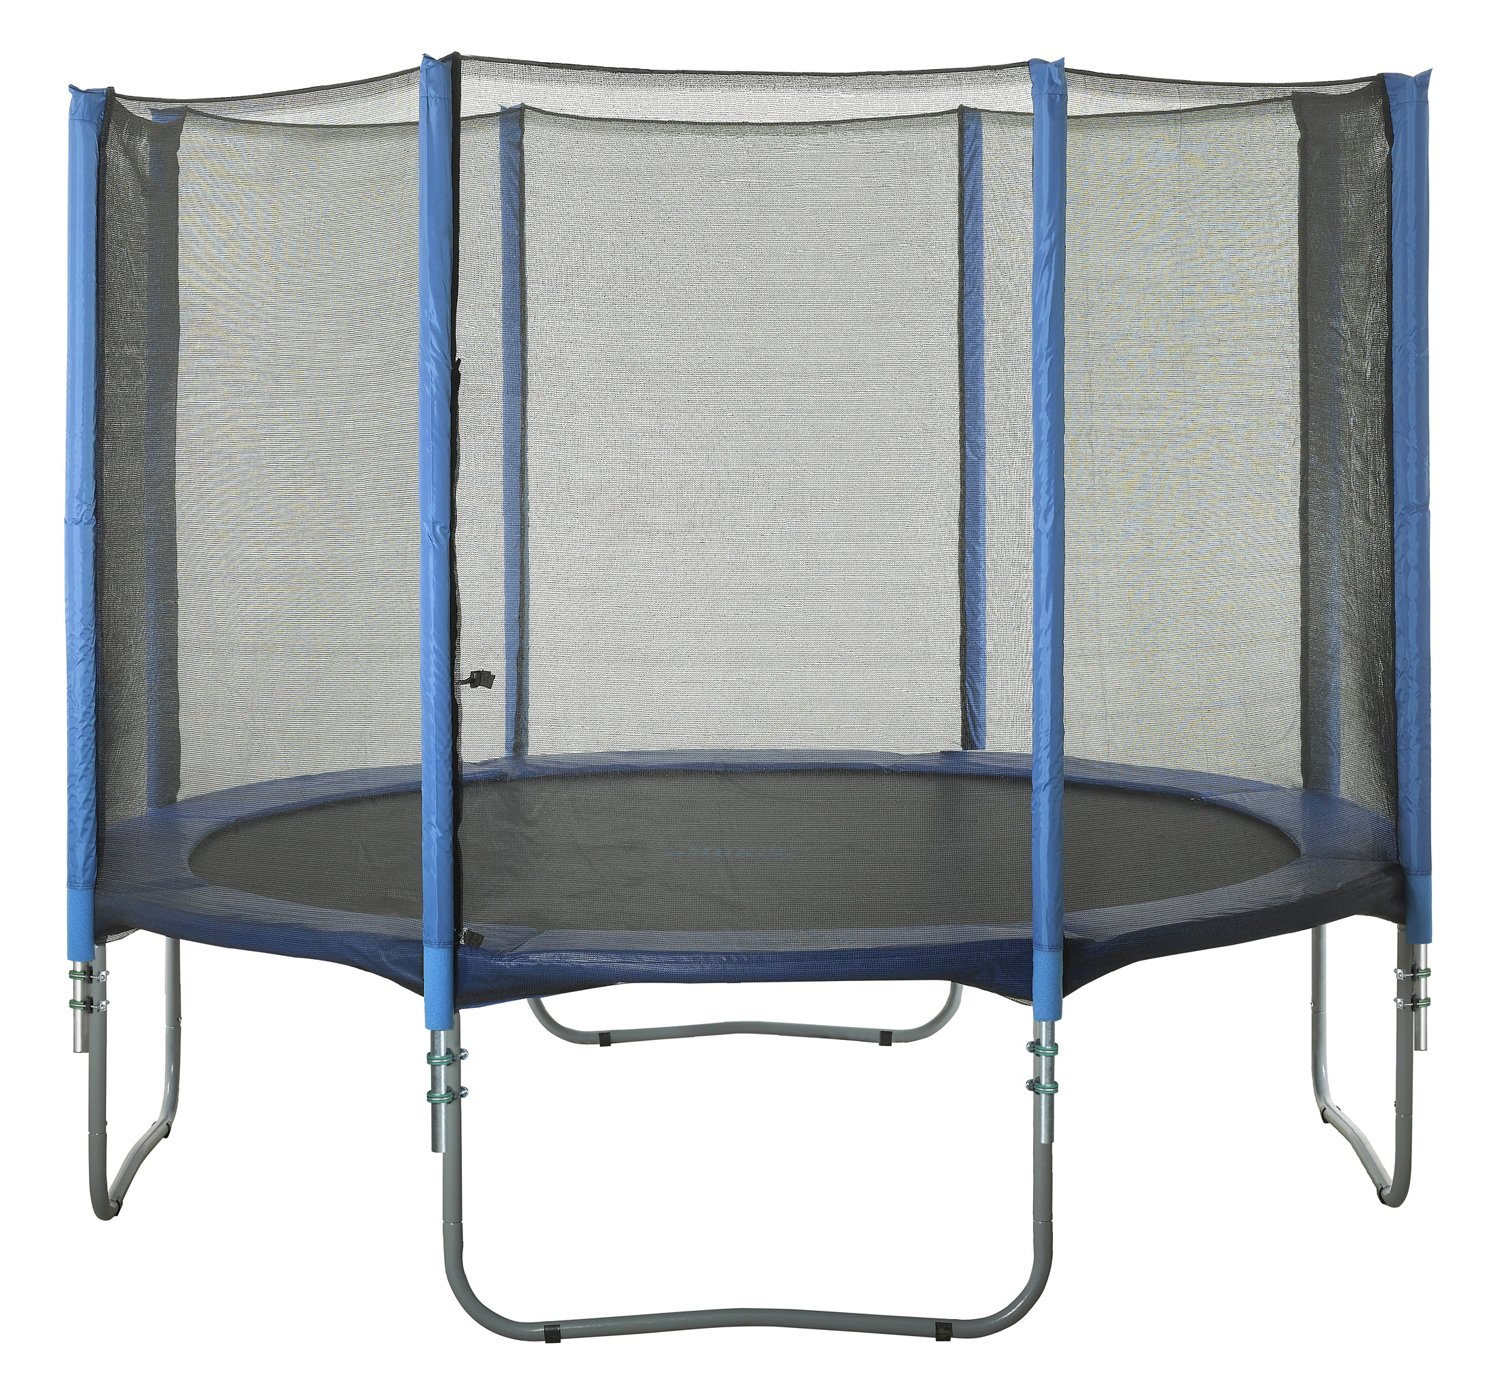 Upper Bounce® 8-Pole Trampoline Enclosure Set for 14' Round Frames with 4 or 8 W-Shape Legs - view number 5